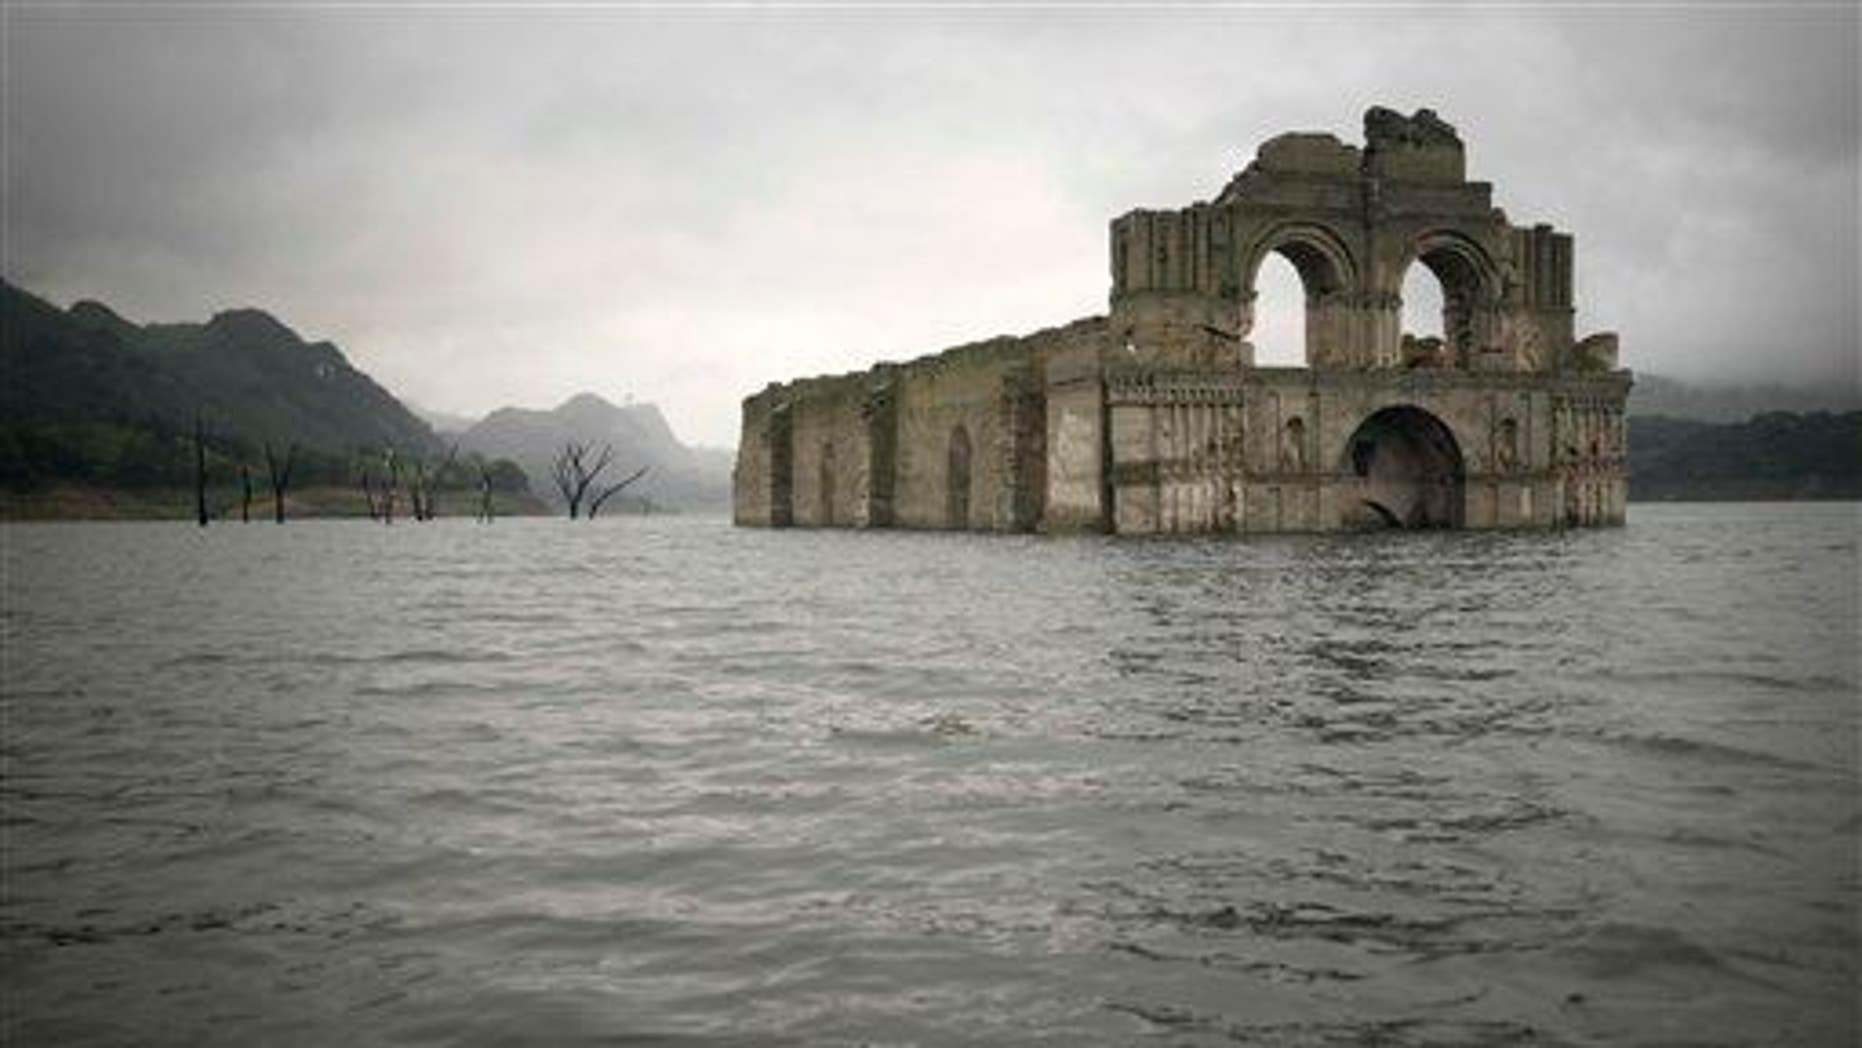 The remains of a mid-16th century church known as the Temple of Santiago is visible from the surface of the Grijalva River, near the town of Nueva Quechula, in Chiapas state, Mexico, Oct. 16, 2015.